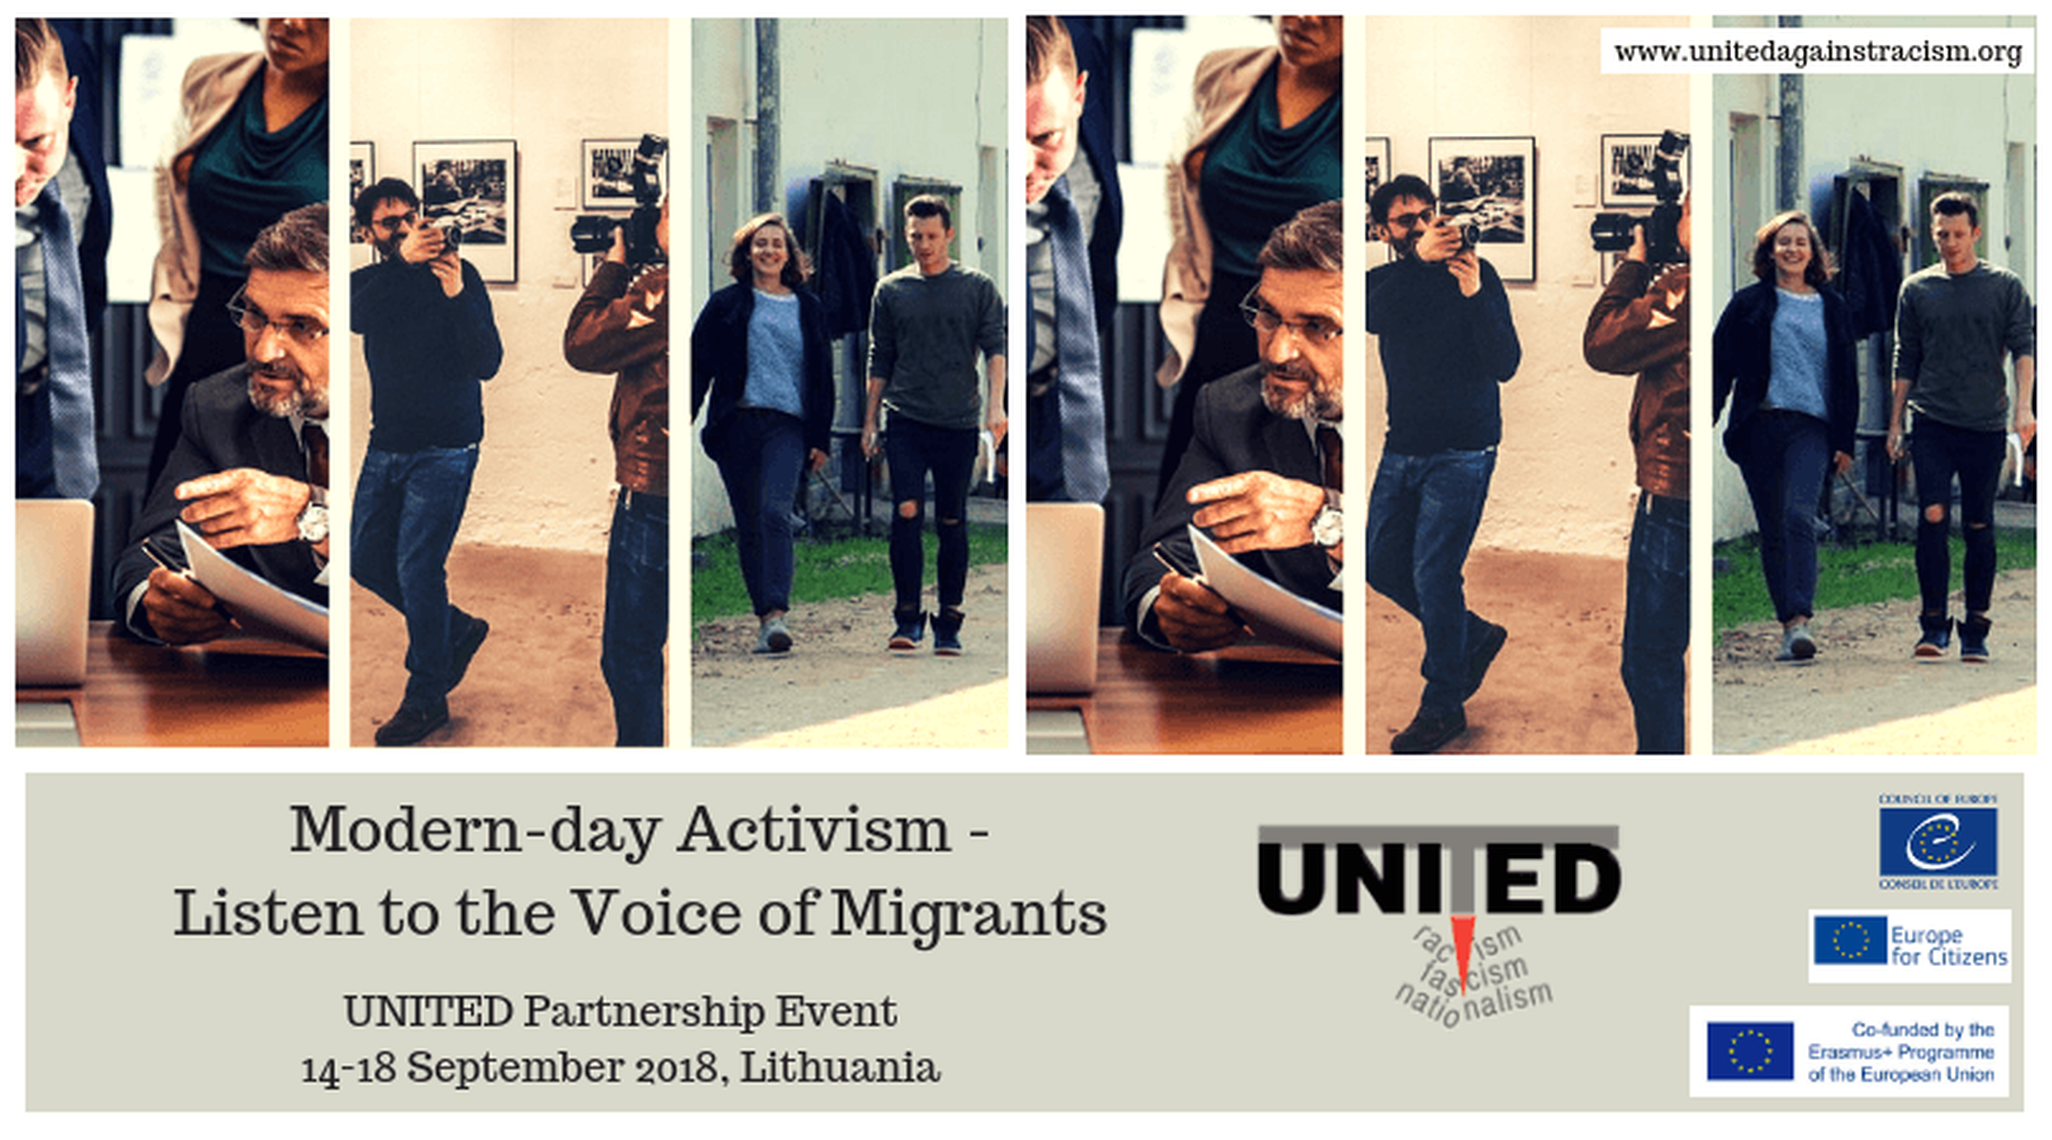 Modern-day Activism - Listen to the Voice of Migrants